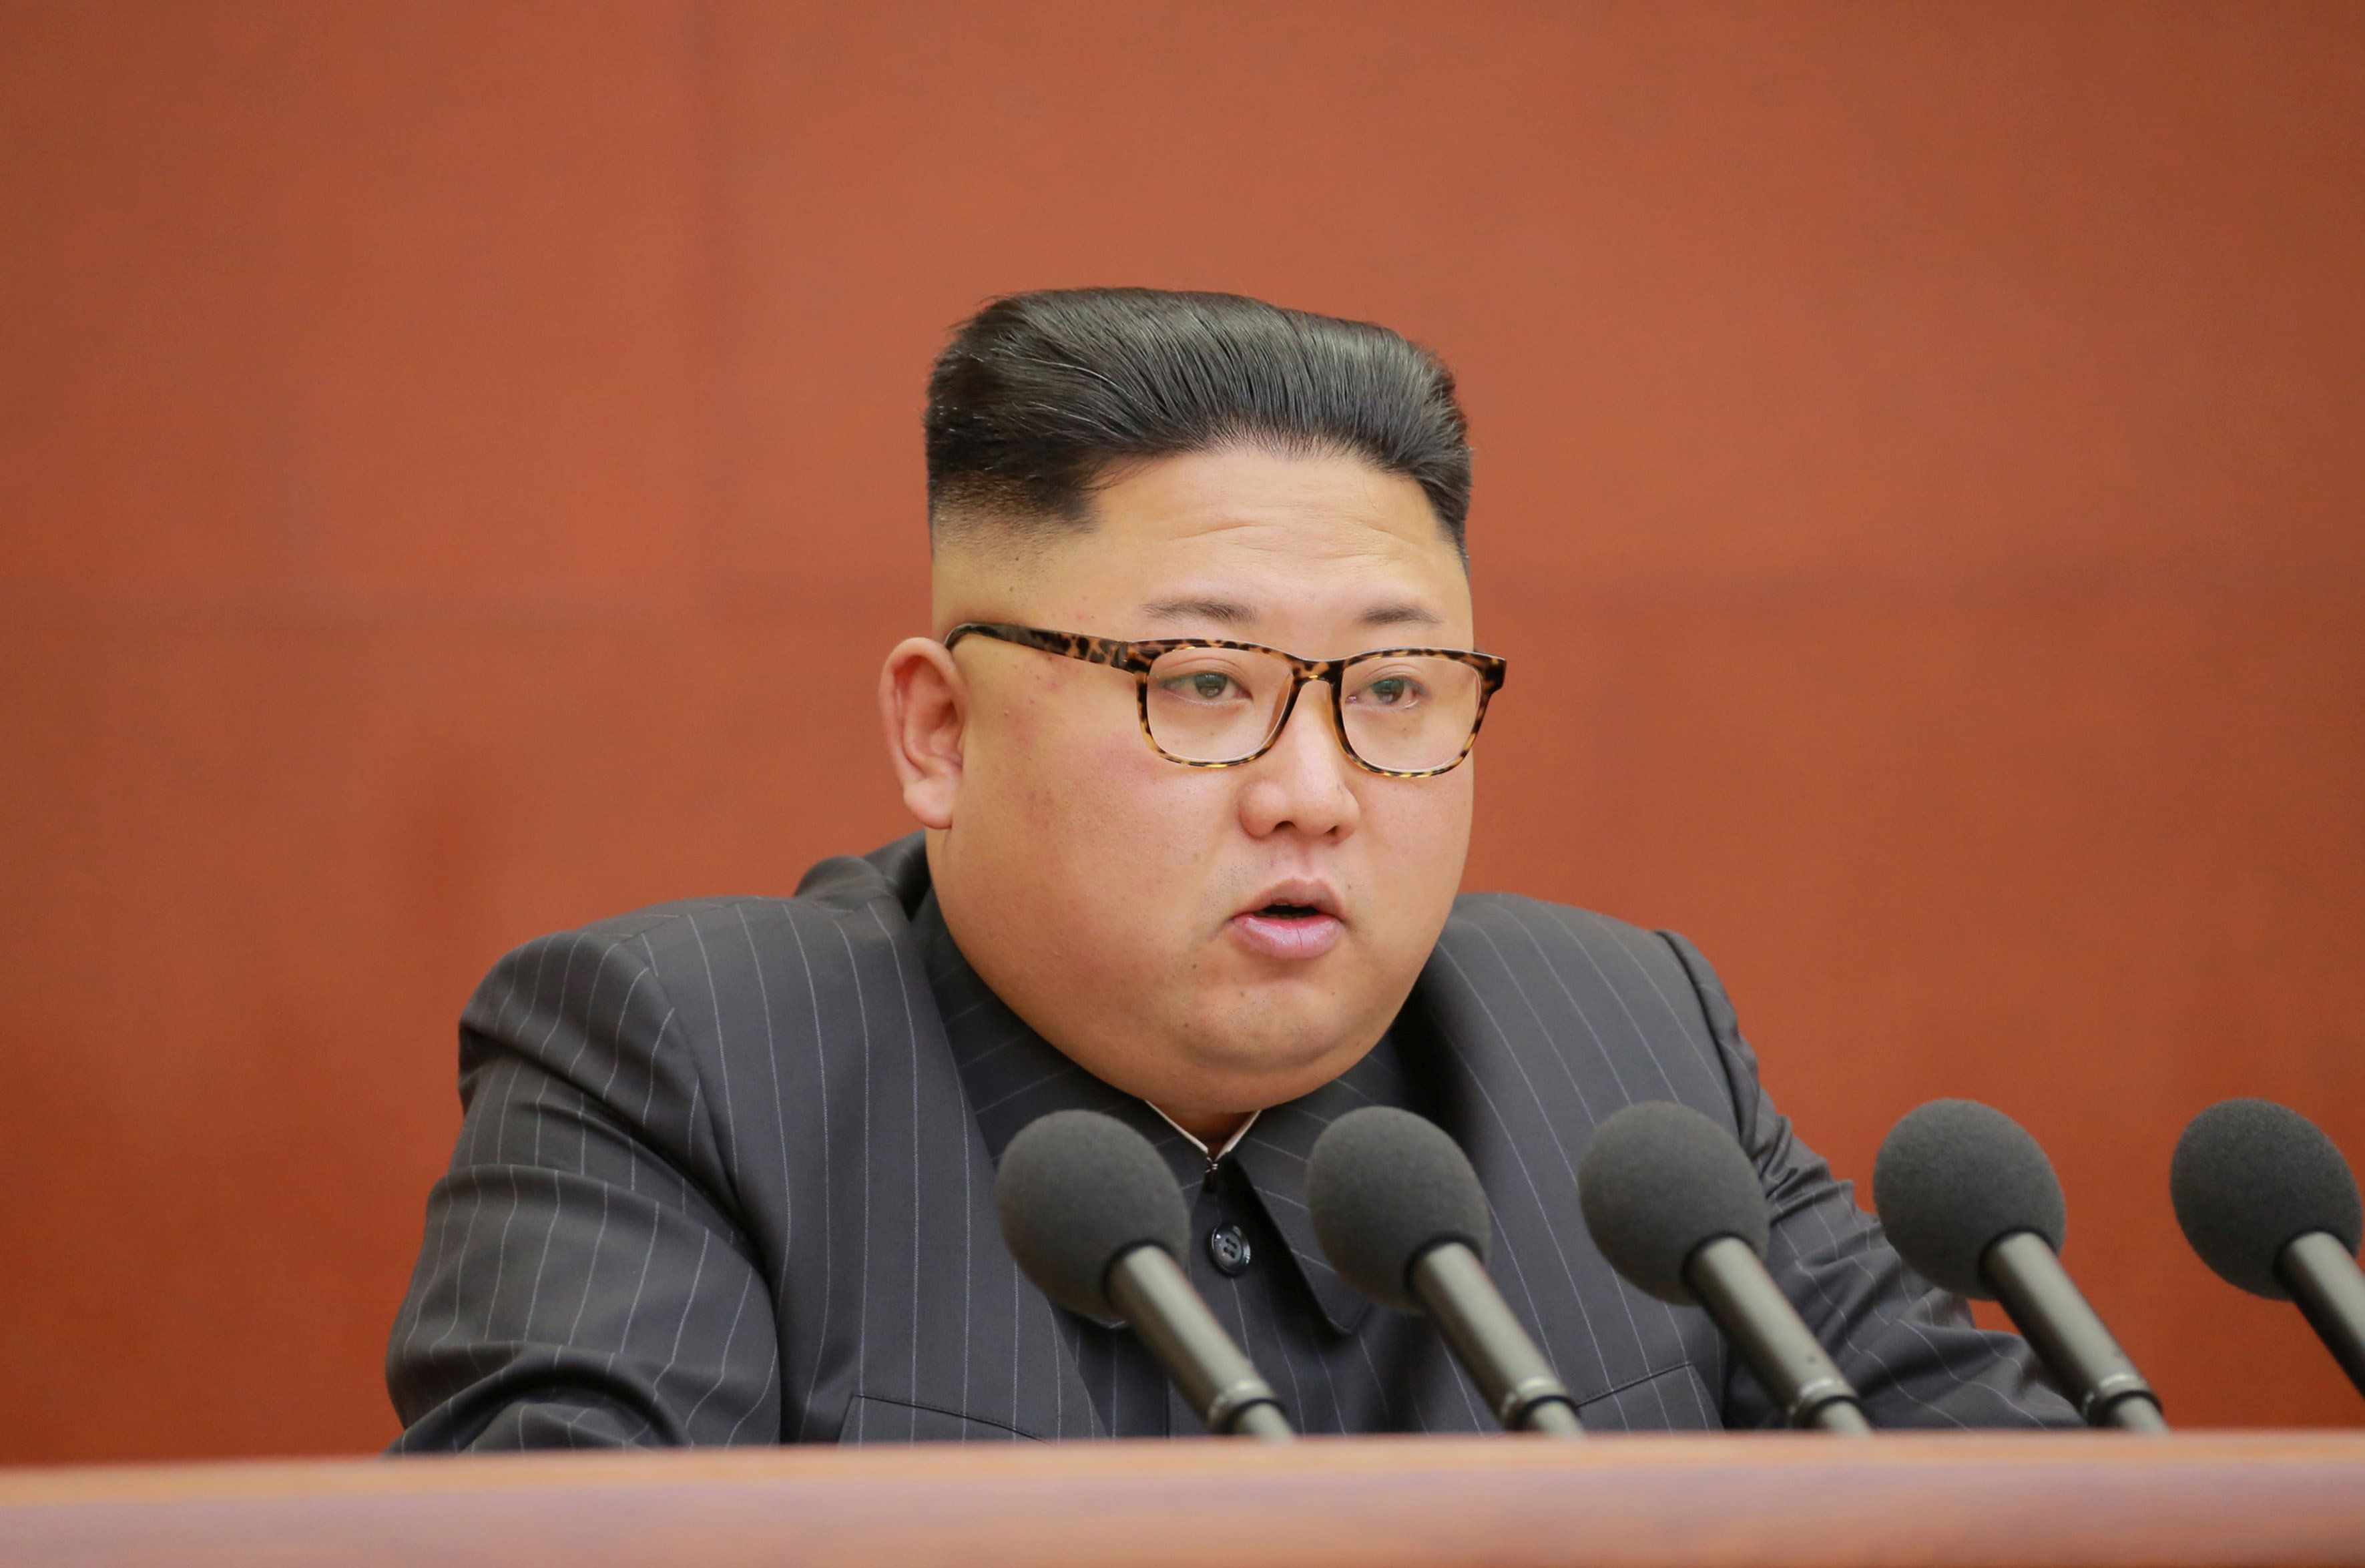 North Korean leader Kim Jong Un speaks during the Second Plenum of the 7th Central Committee of the Workers' Party of Korea (WPK) at the Kumsusan Palace of the Sun, in this undated photo released by North Korea's Korean Central News Agency (KCNA) in Pyongyang October 8, 2017. KCNA/via REUTERS. ATTENTION EDITORS - THIS IMAGE WAS PROVIDED BY A THIRD PARTY. REUTERS IS UNABLE TO INDEPENDENTLY VERIFY THIS IMAGE. NO THIRD PARTY SALES. SOUTH KOREA OUT.